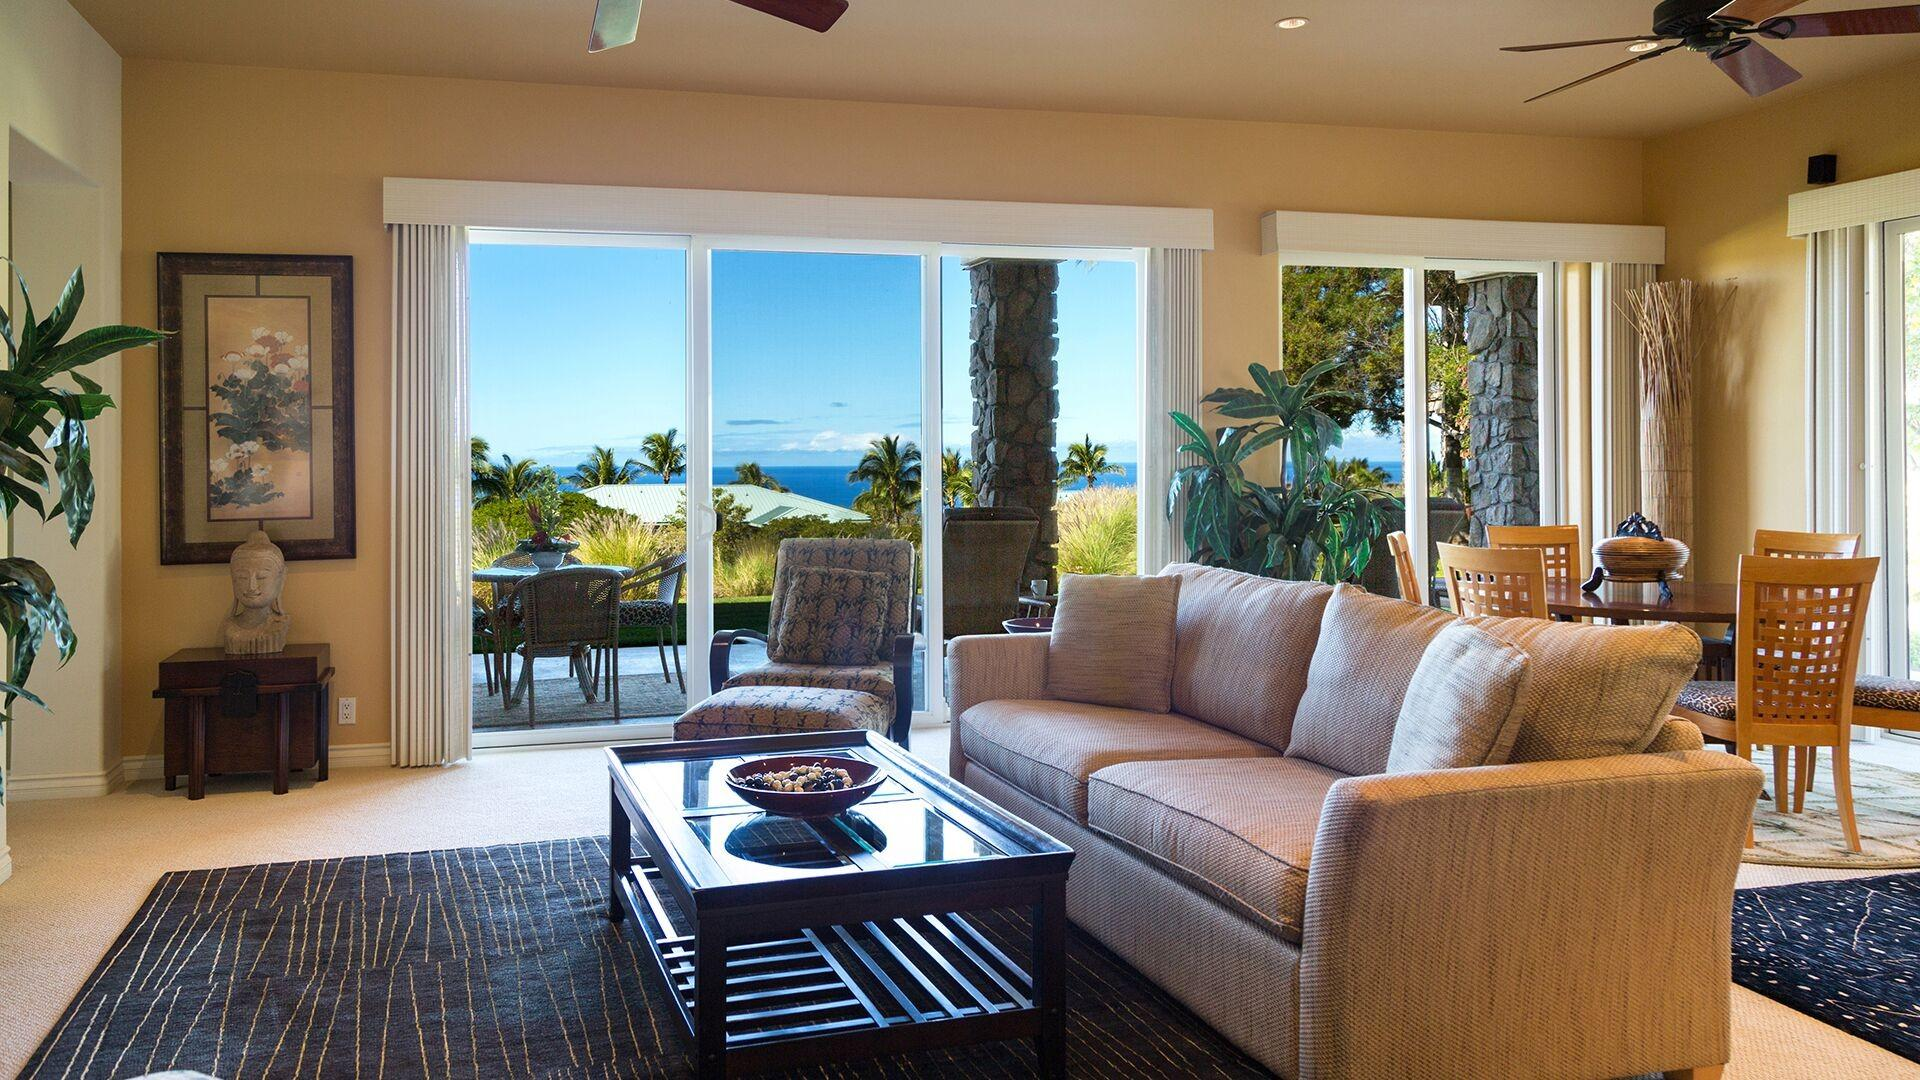 The living and dining room have wonderful ocean views. There is a smart TV and a DVR to record shows while you are at the beach. The couch is also a sofa bed if you need to utilize it.